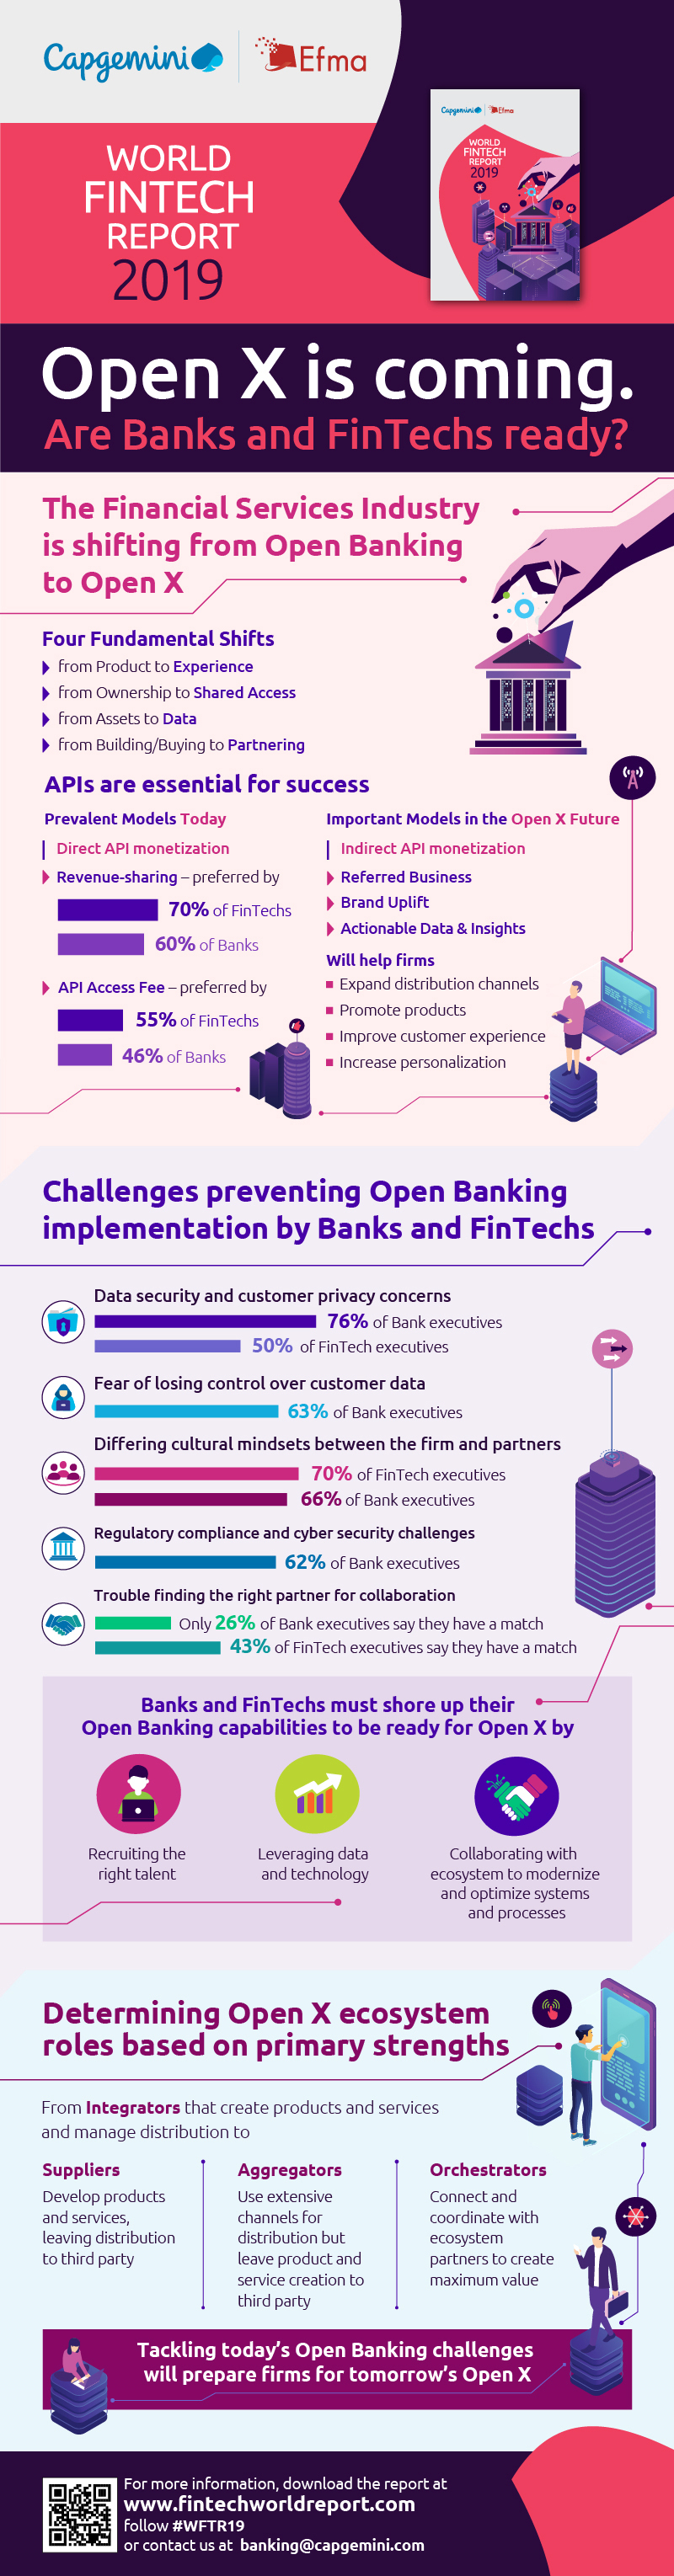 Capgemini's World FinTech Report 2019 Infographic